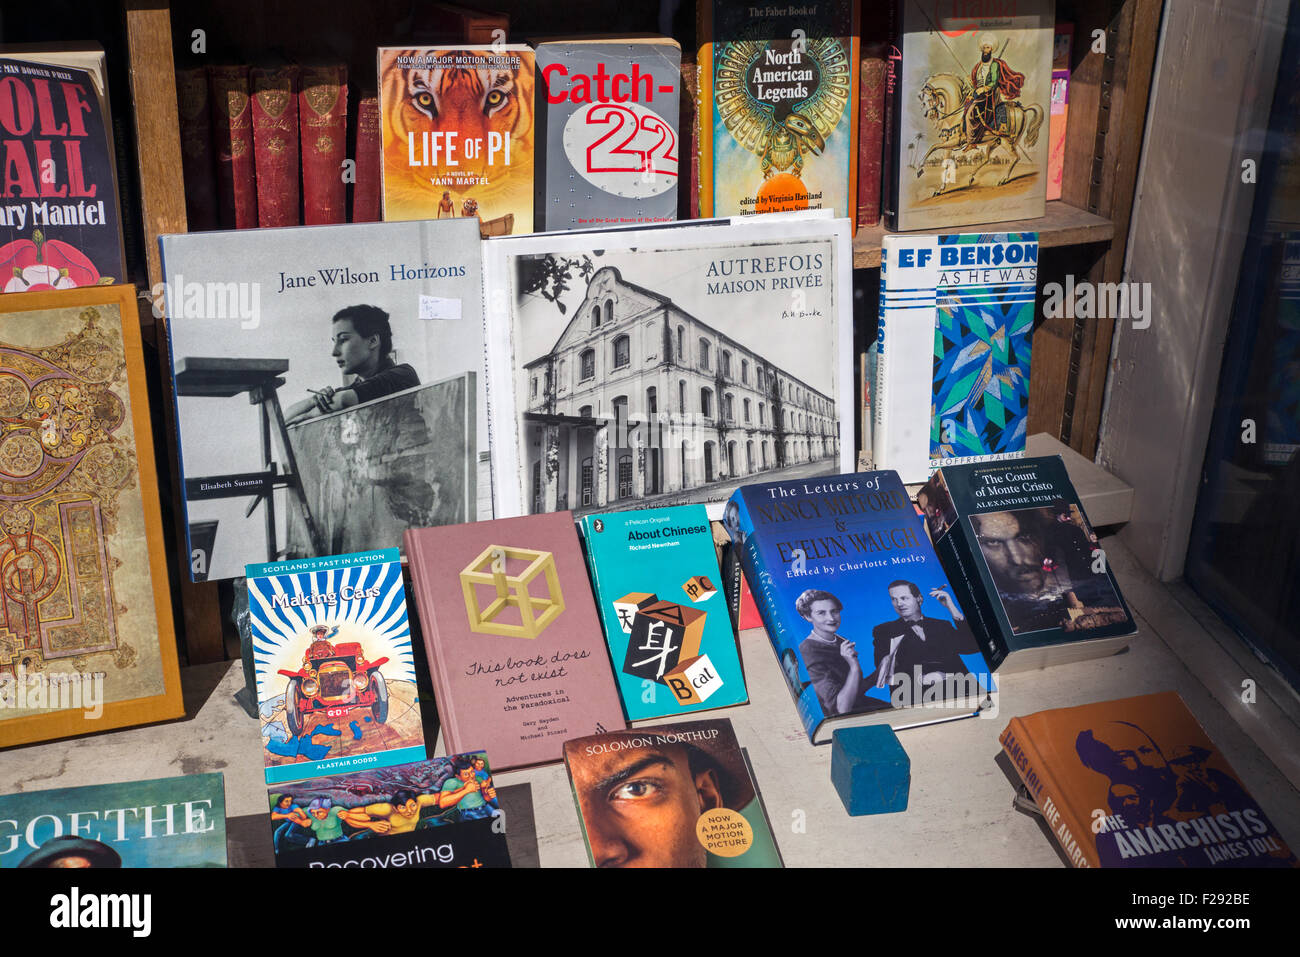 A display of books for sale in the window of a secondhand bookshop, Edinburgh, Scotland. - Stock Image